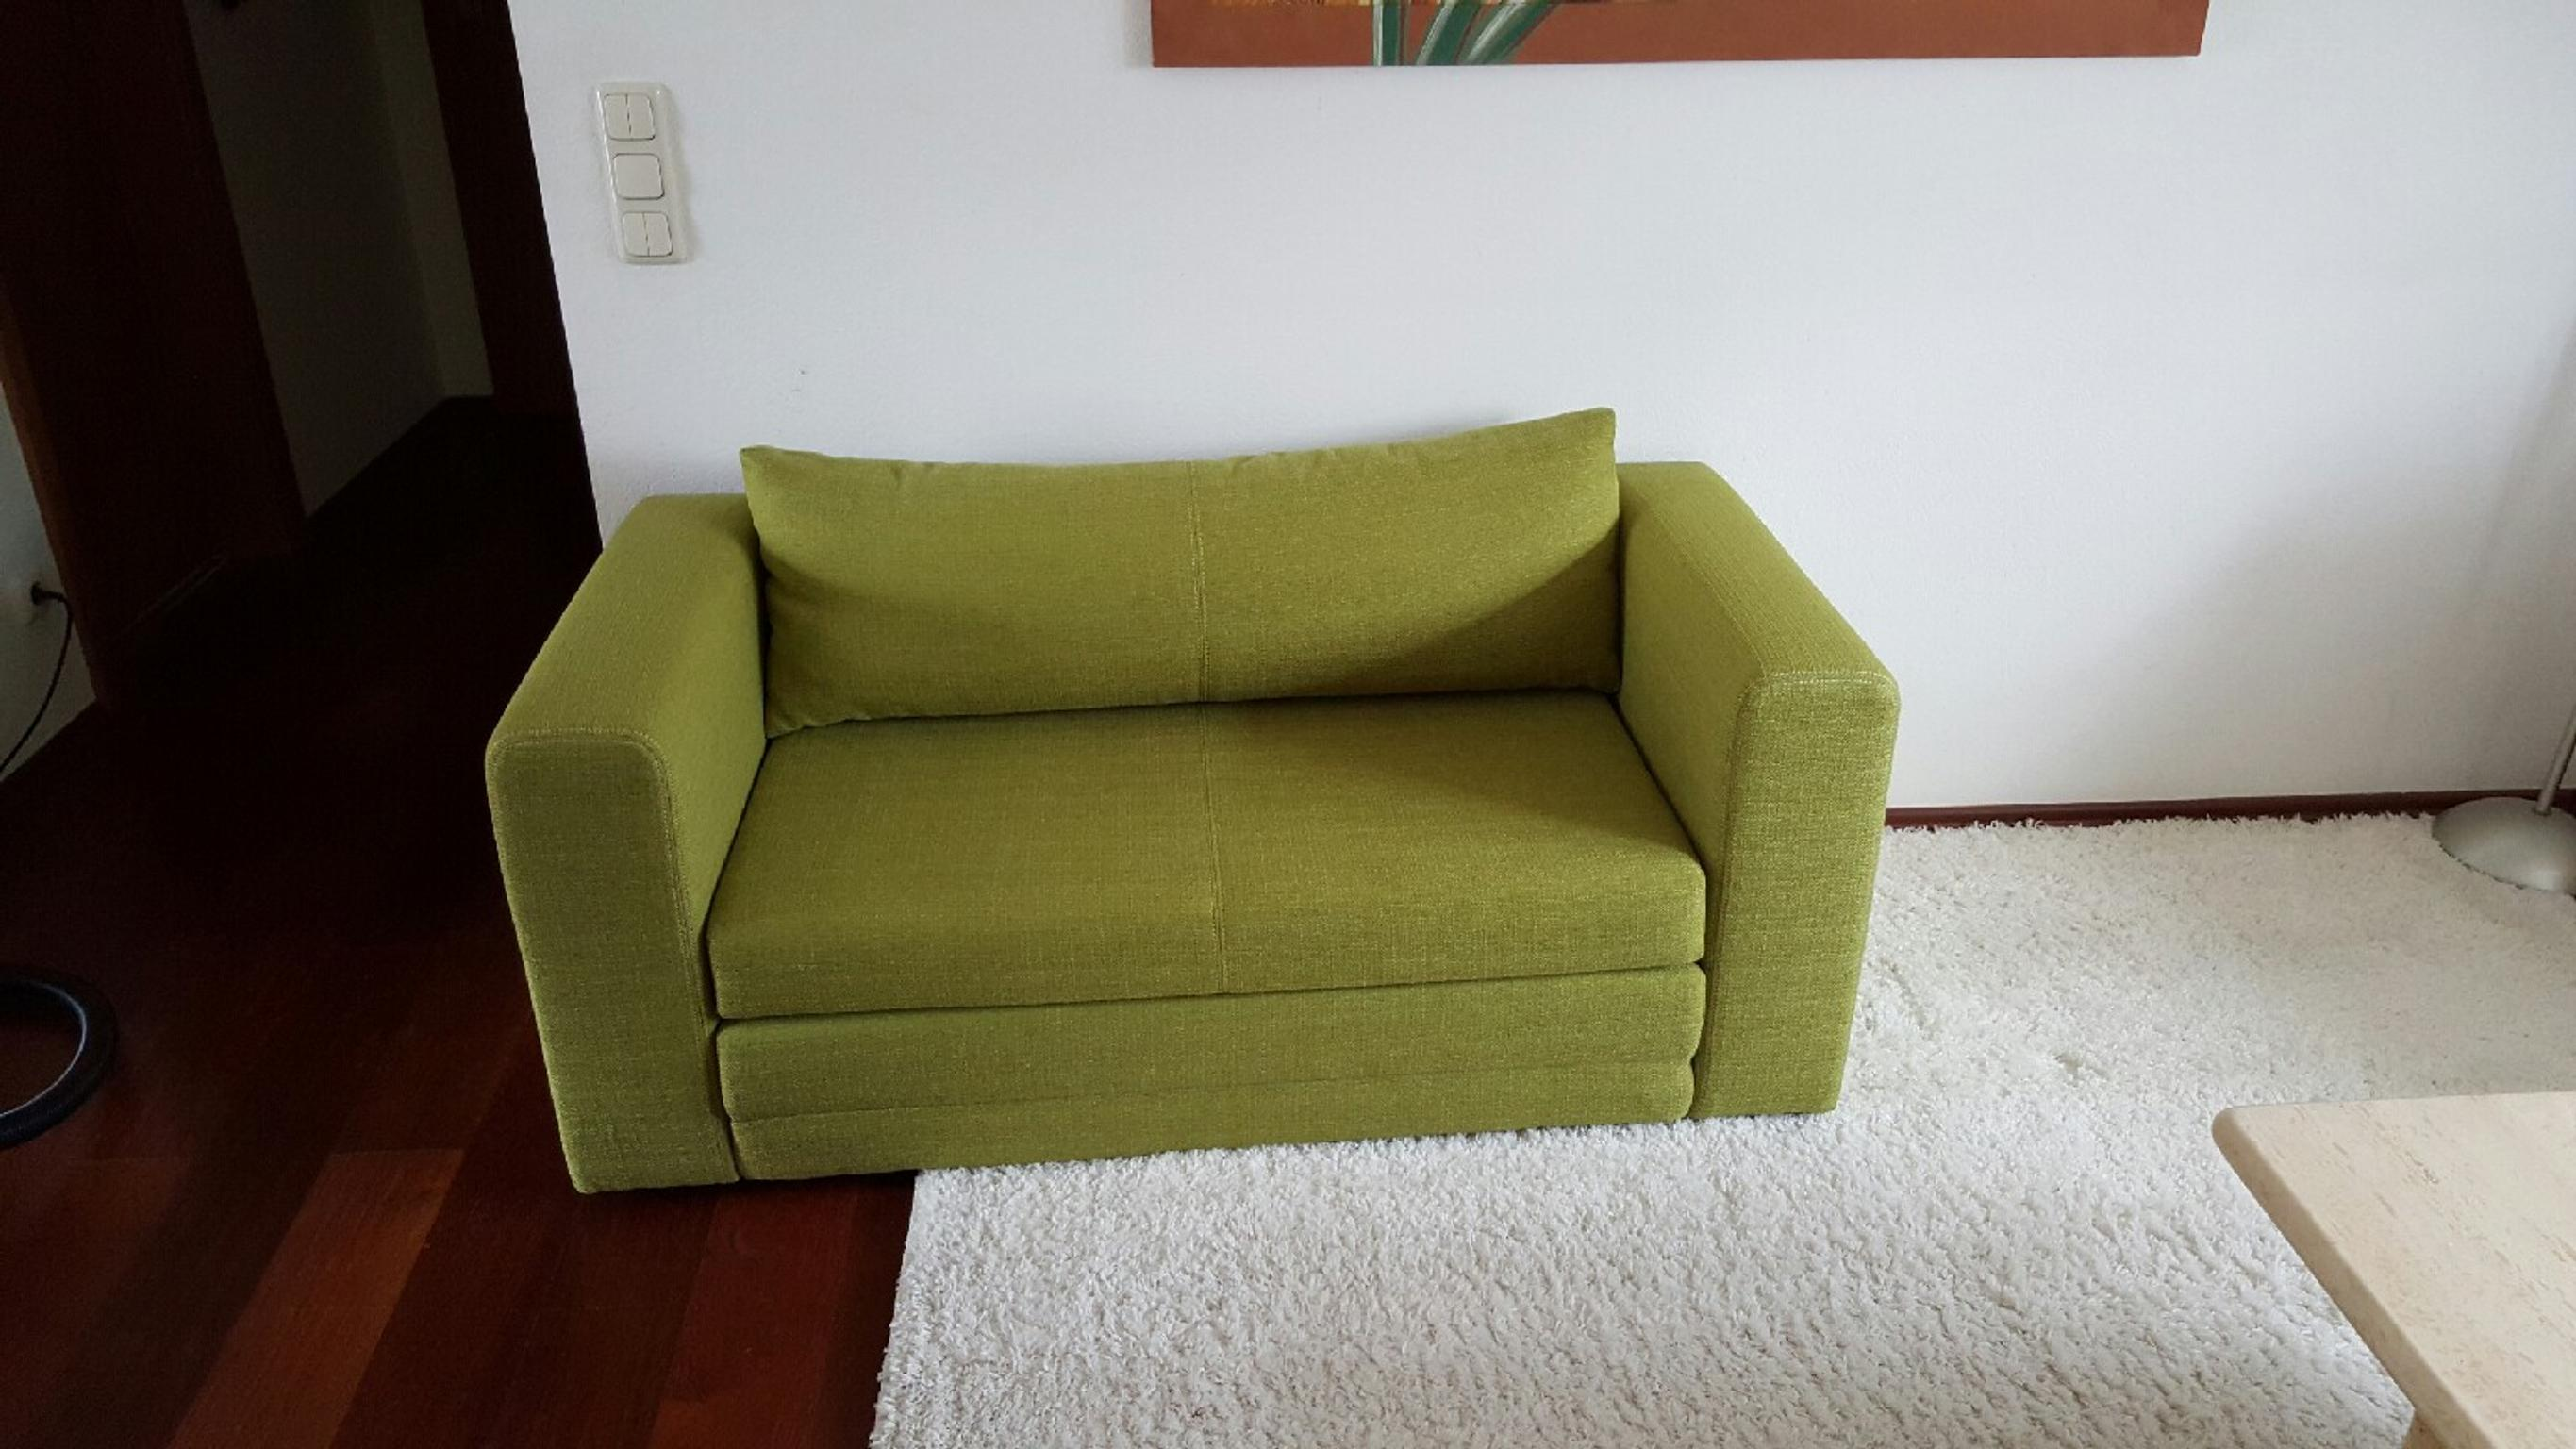 Ikea Askeby Schlafcouch In Grun